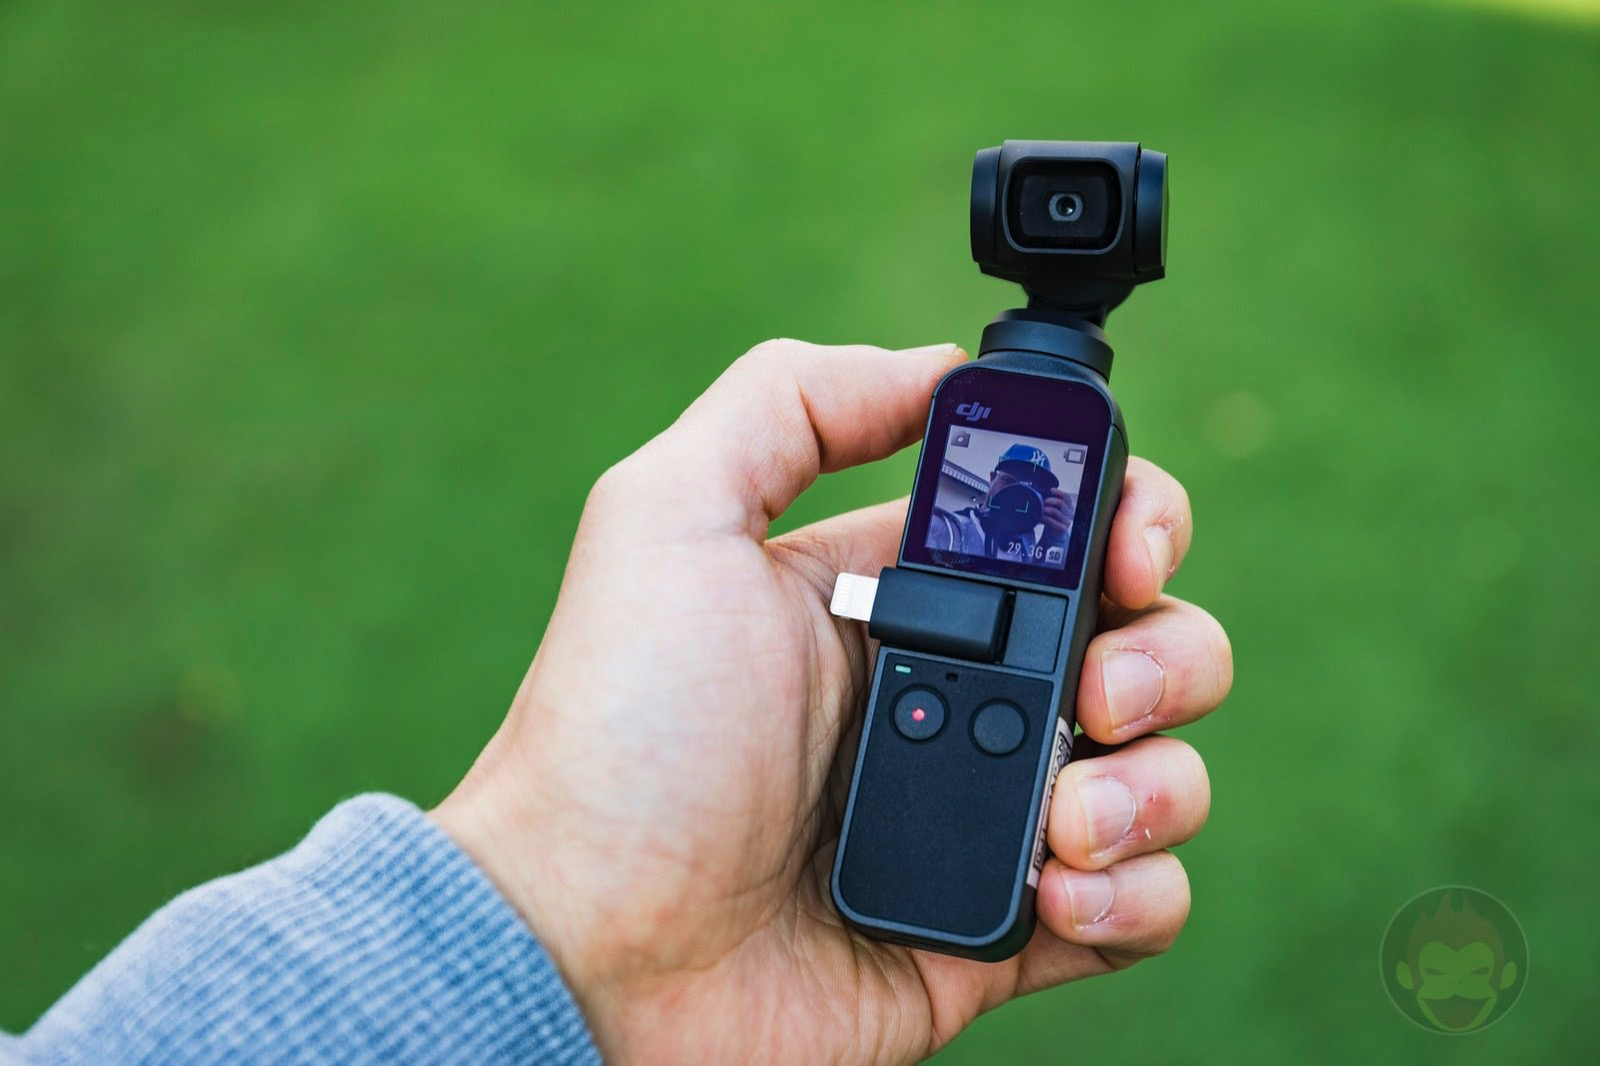 DJI Osmo Pocket Hands On 01